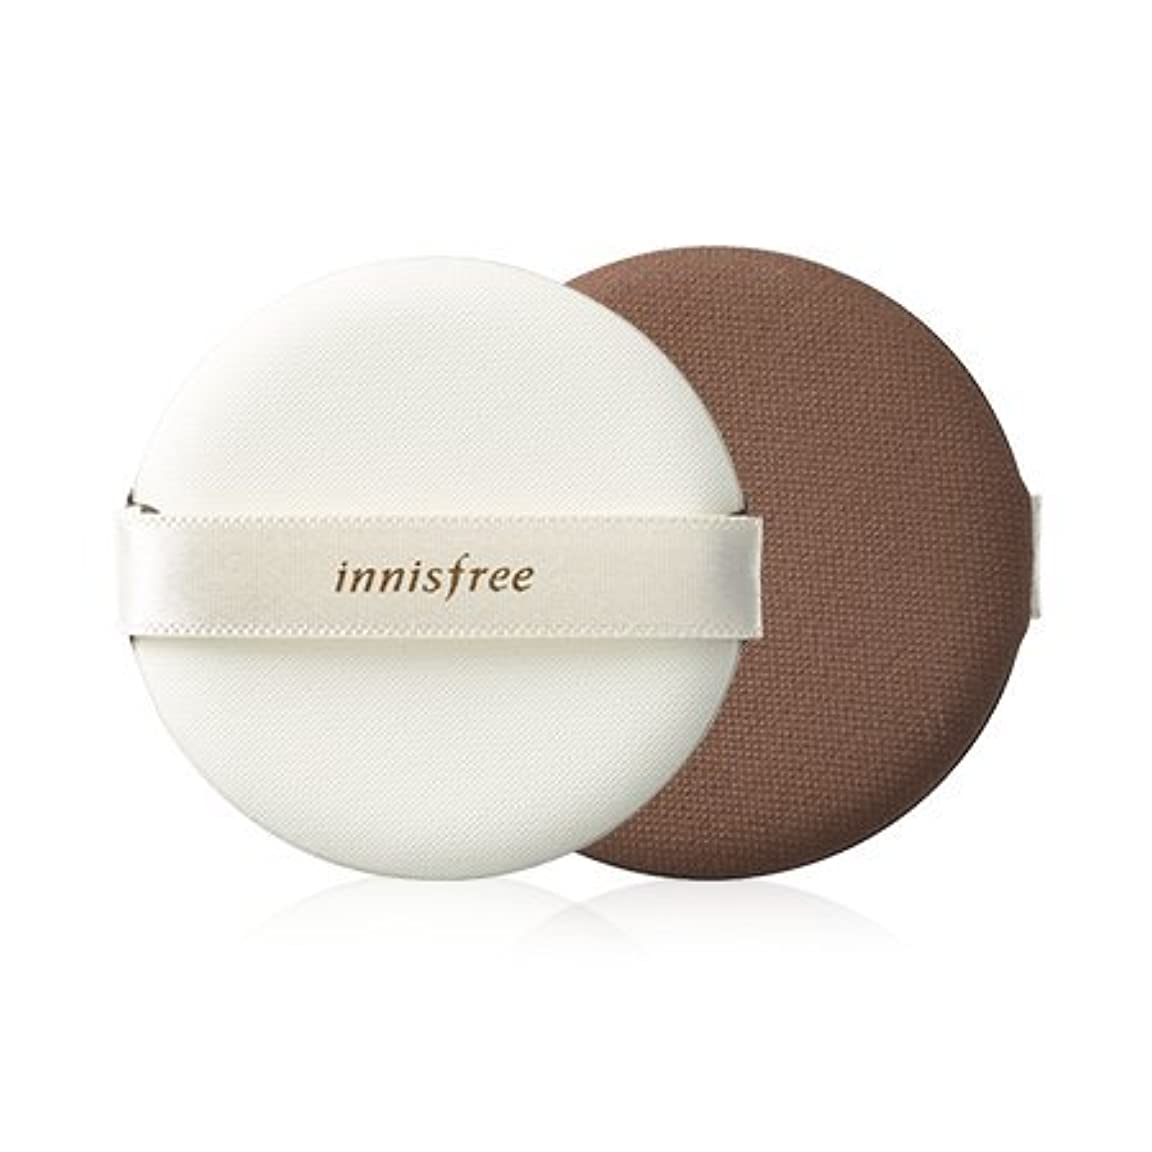 【イニスフリー】Innisfree beauty tool air magic puff fitting x10 (韓国直送品) (SHOPPINGINSTAGRAM)